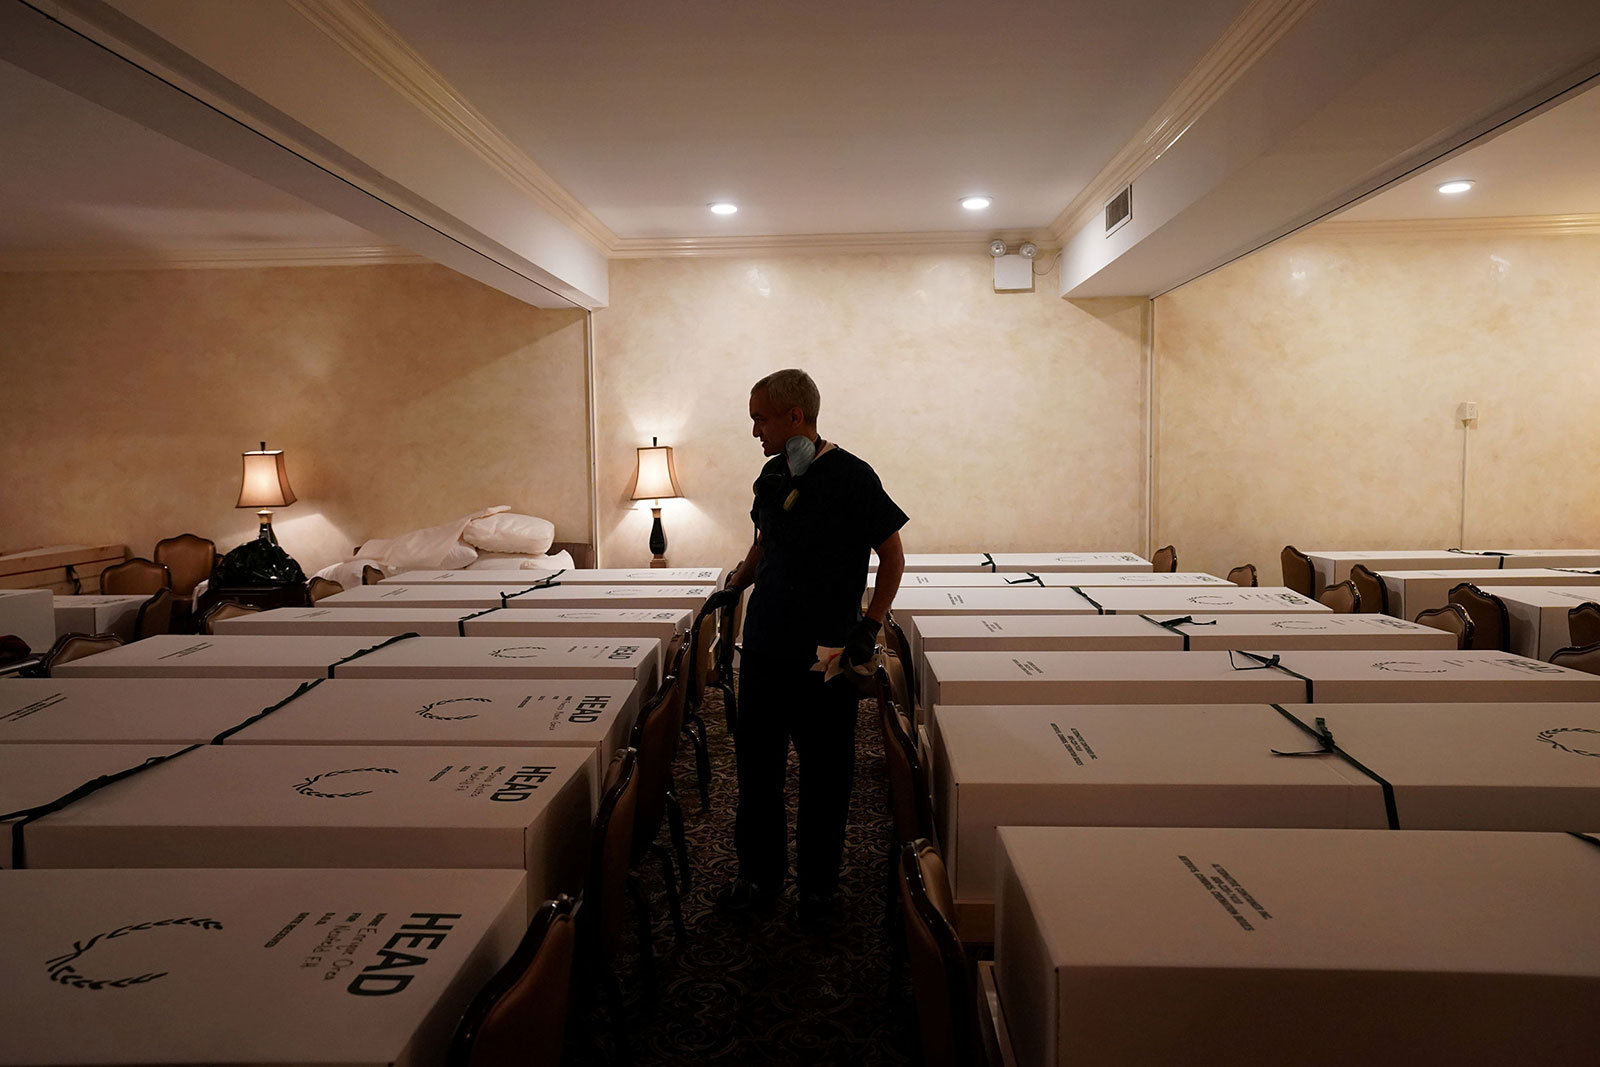 Funeral Director Omar Rodriguez walks by caskets at Gerard J. Neufeld funeral home in Queens, New York, on April 26.